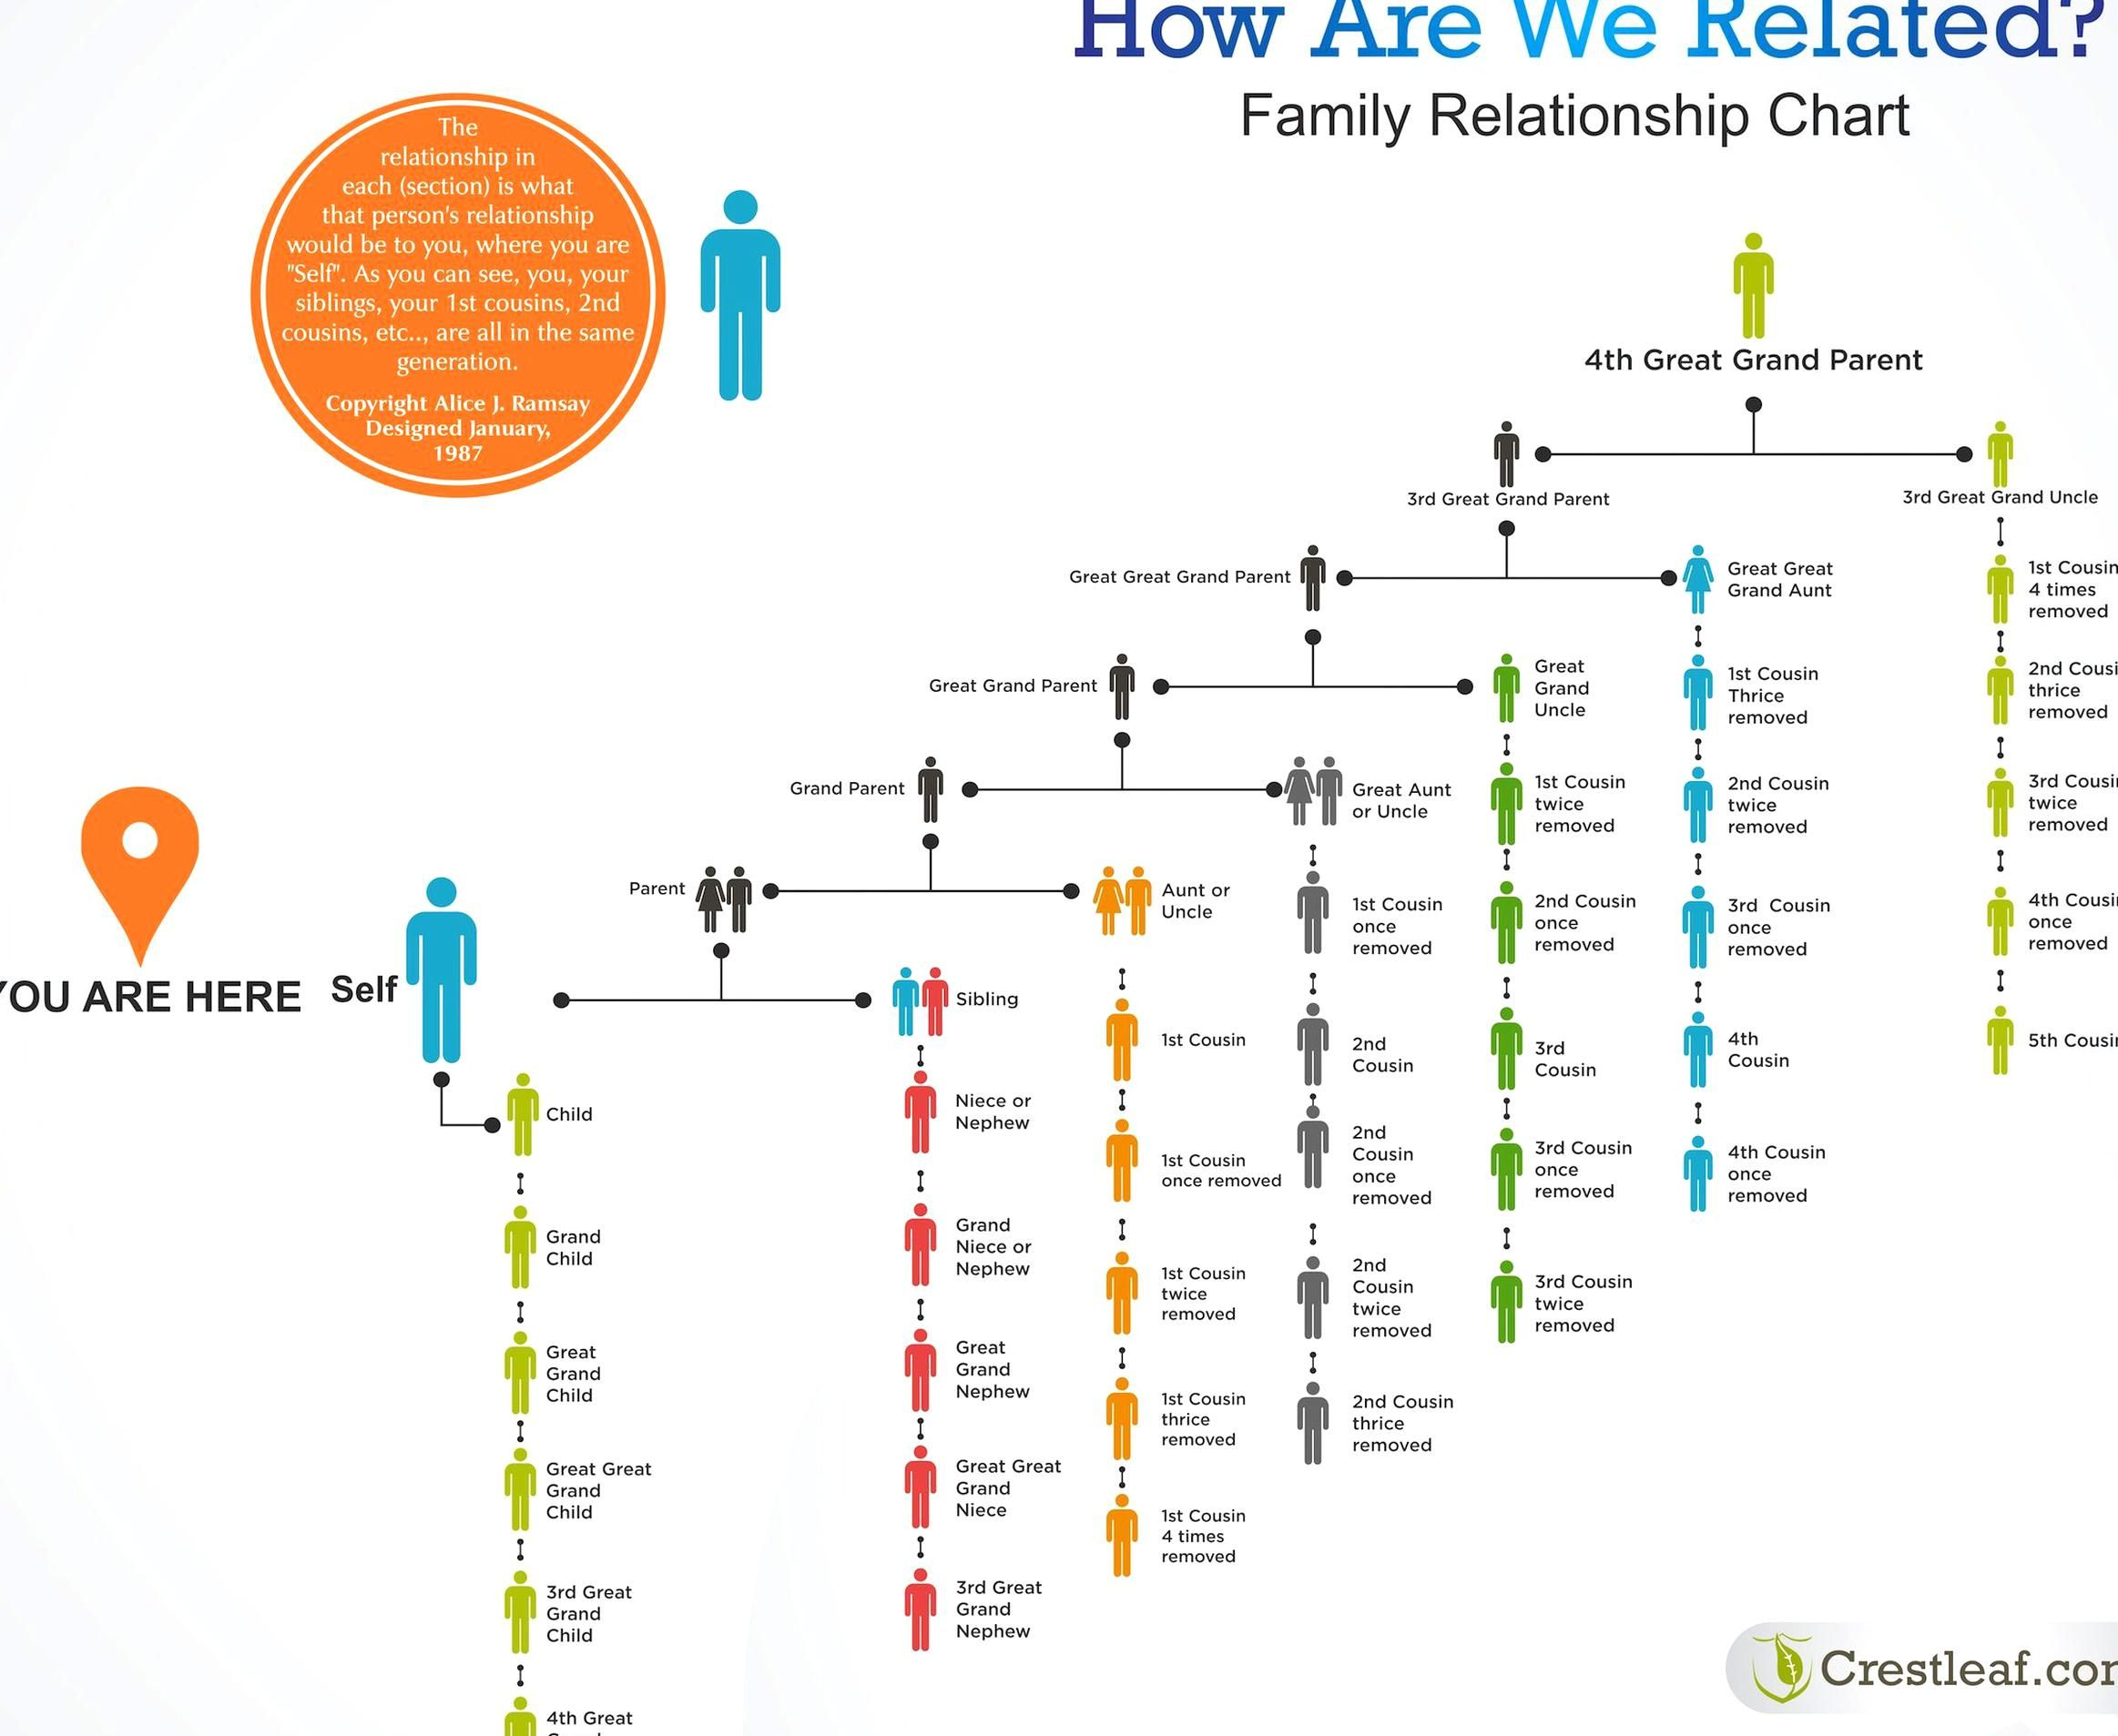 Colorful Family Relationship Chart Helps Answer The Question How Are We Related Family Hist In 2020 Relationship Chart Family Relationship Chart Family Relationships